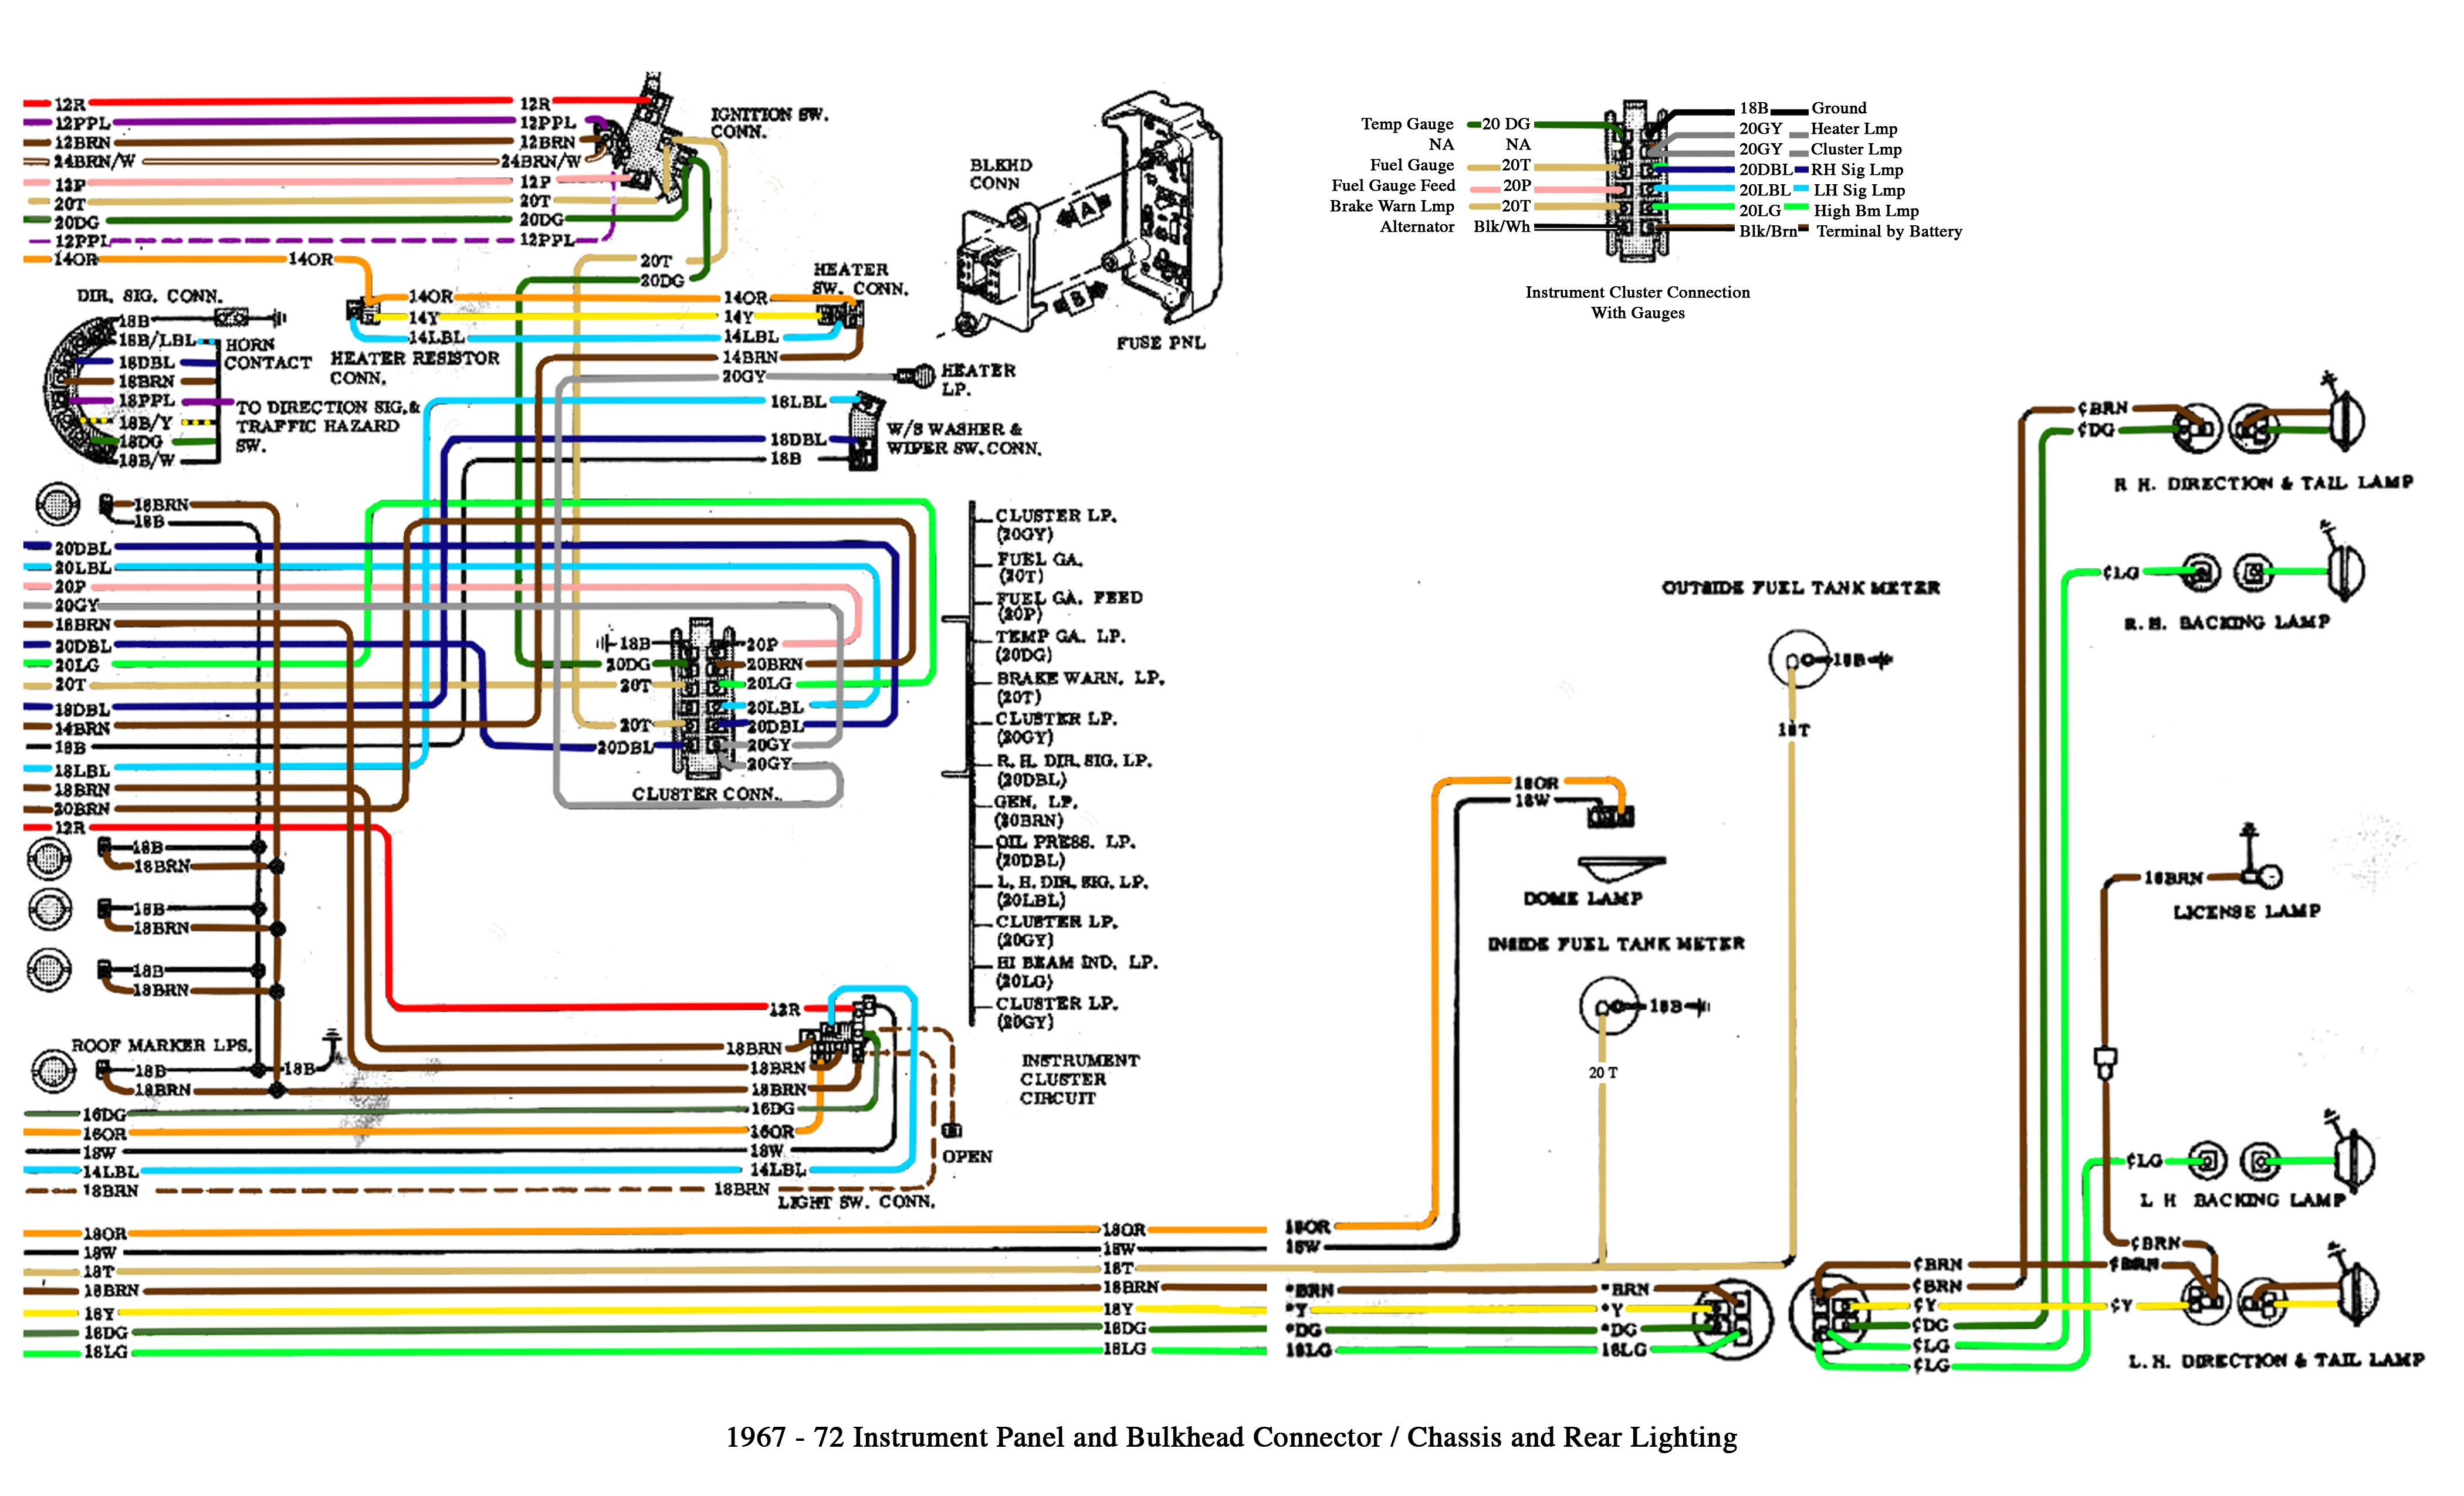 1973 C65 Wiring Diagram Detailed Schematics Electrical For A House 1975 Chevy Diagrams Symbols